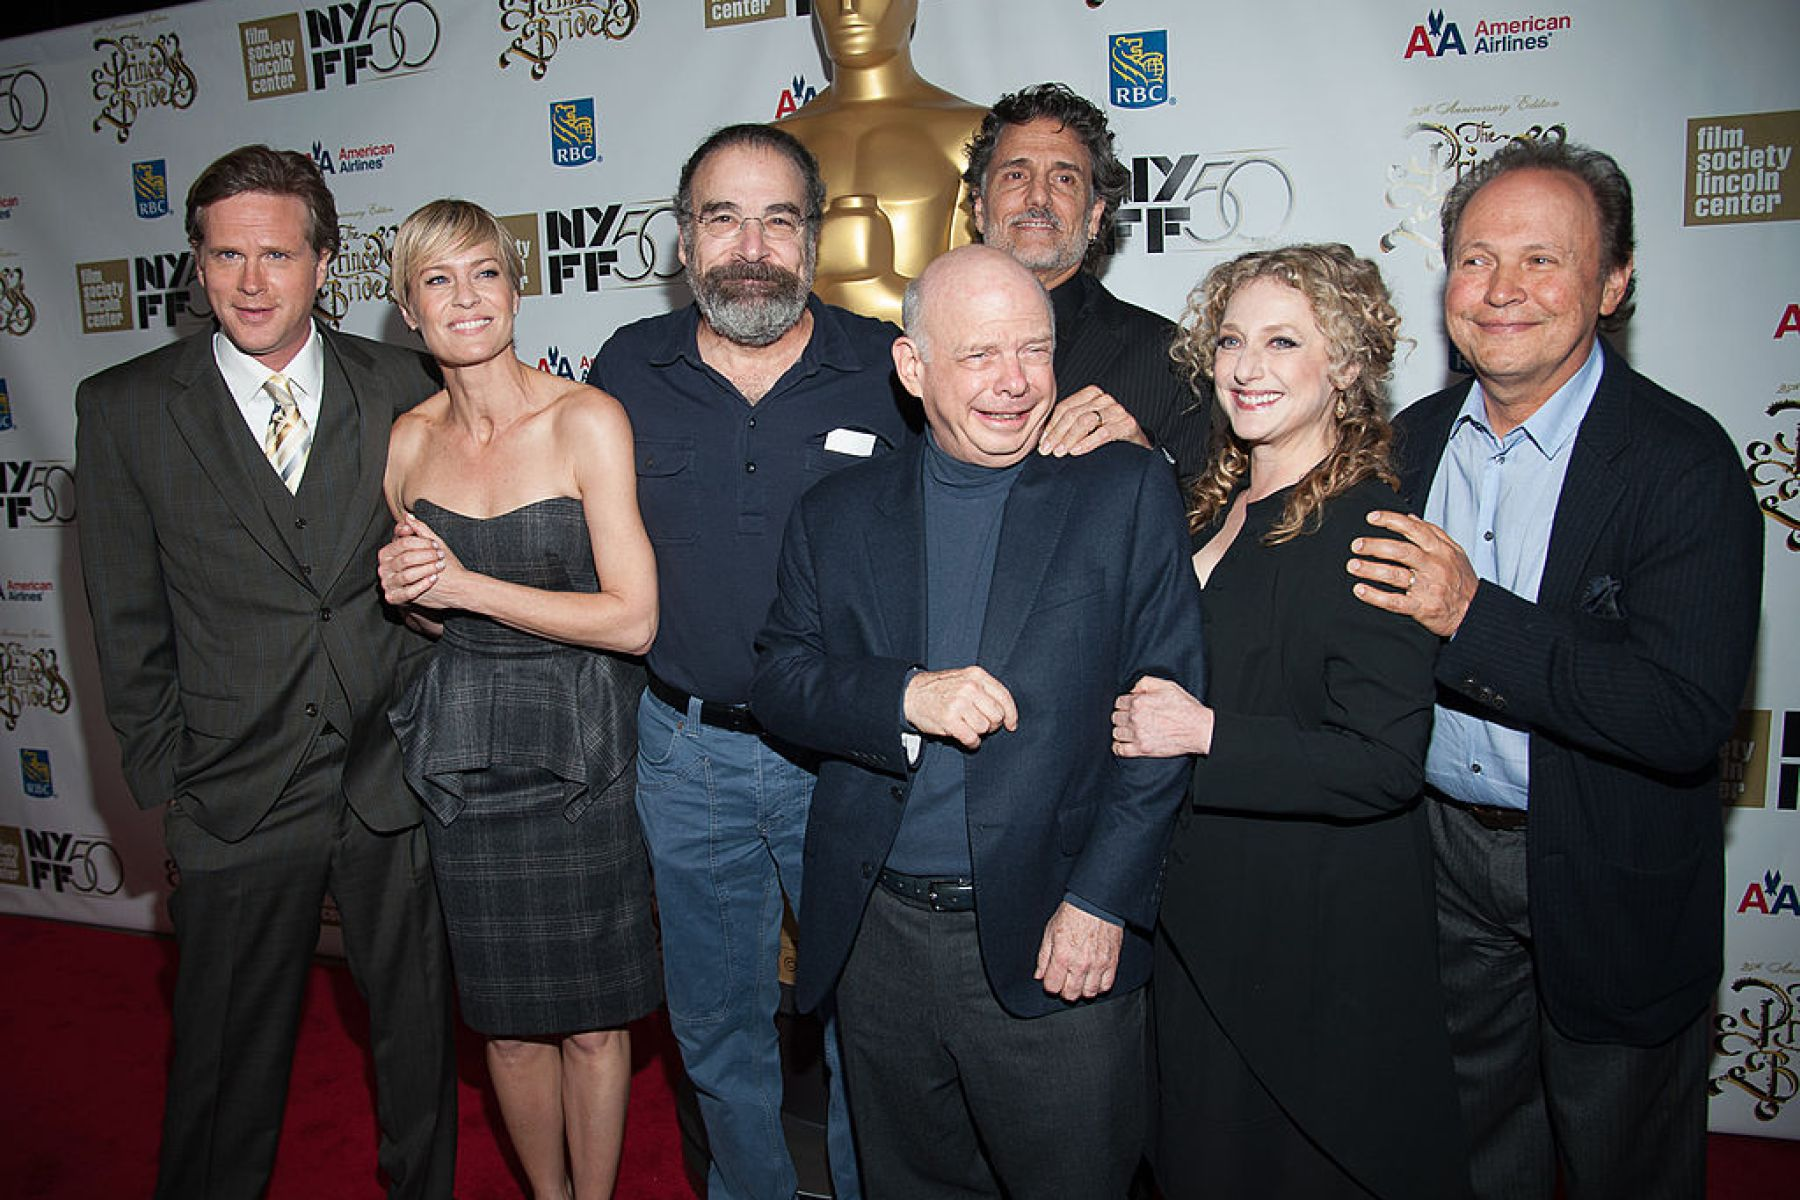 """NEW YORK, NY - OCTOBER 02:  (L-R) Cary Elwes, Robin Wright, Rob Reiner, Chris Sarandon, Wallace Shawn, Carol Kane, and Billy Crystal attend the 25th Anniversary Screening & Cast Reunion Of """"The Princess Bride"""" during the 50th annual New York Film Festival at Alice Tully Hall on October 2, 2012 in New York City.  (Photo by Dave Kotinsky/WireImage)"""